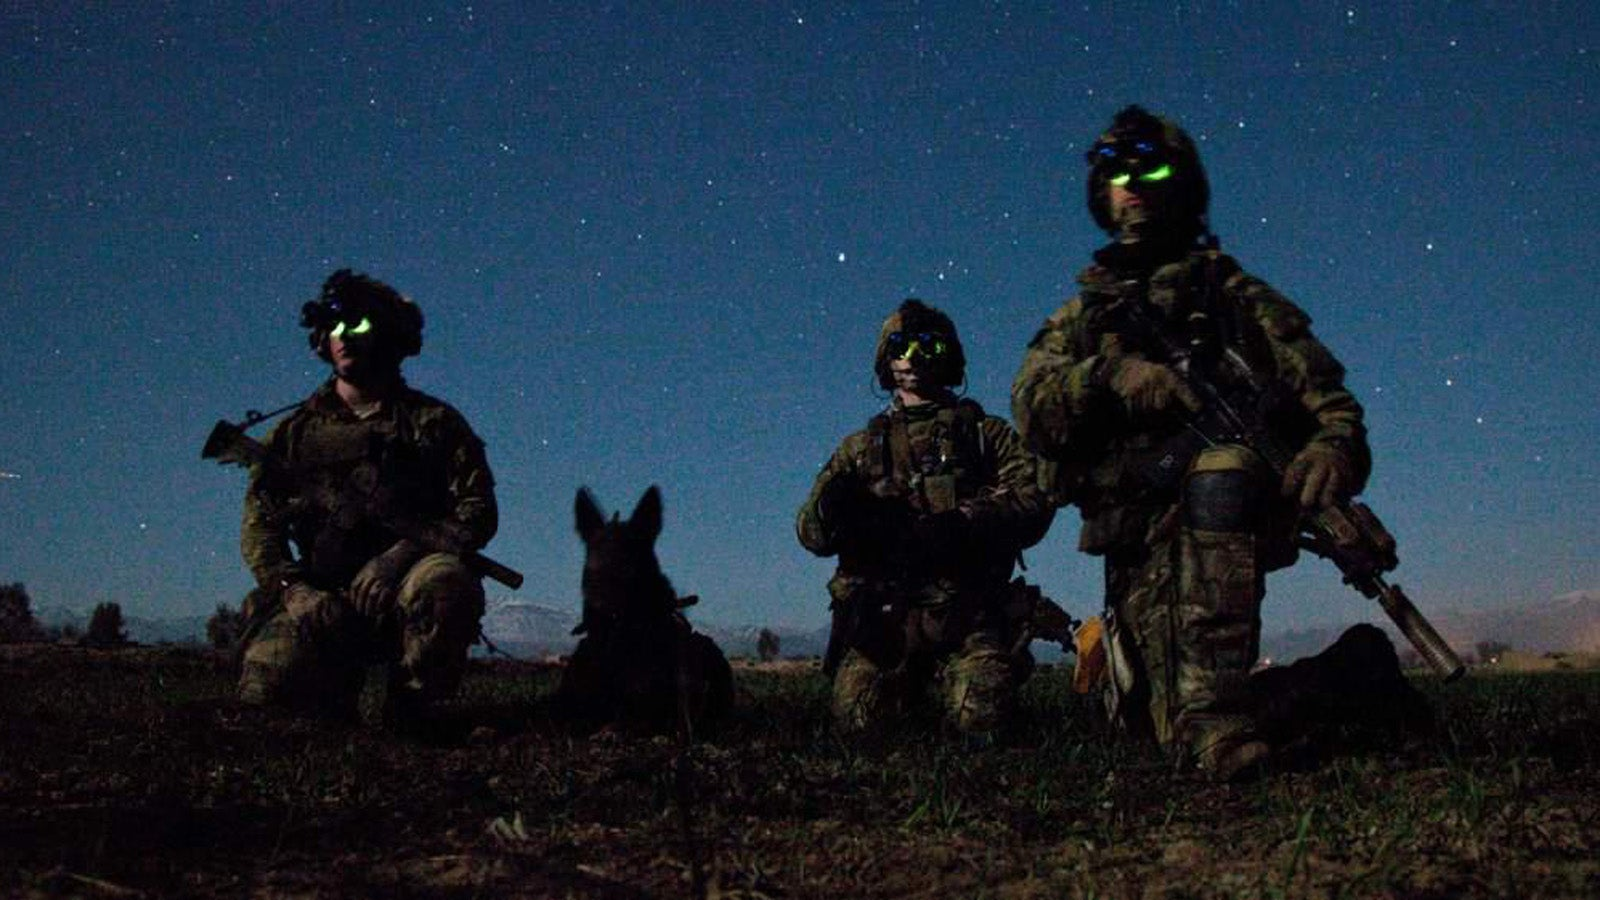 Group Of Dog Army Awesome Wallpapers